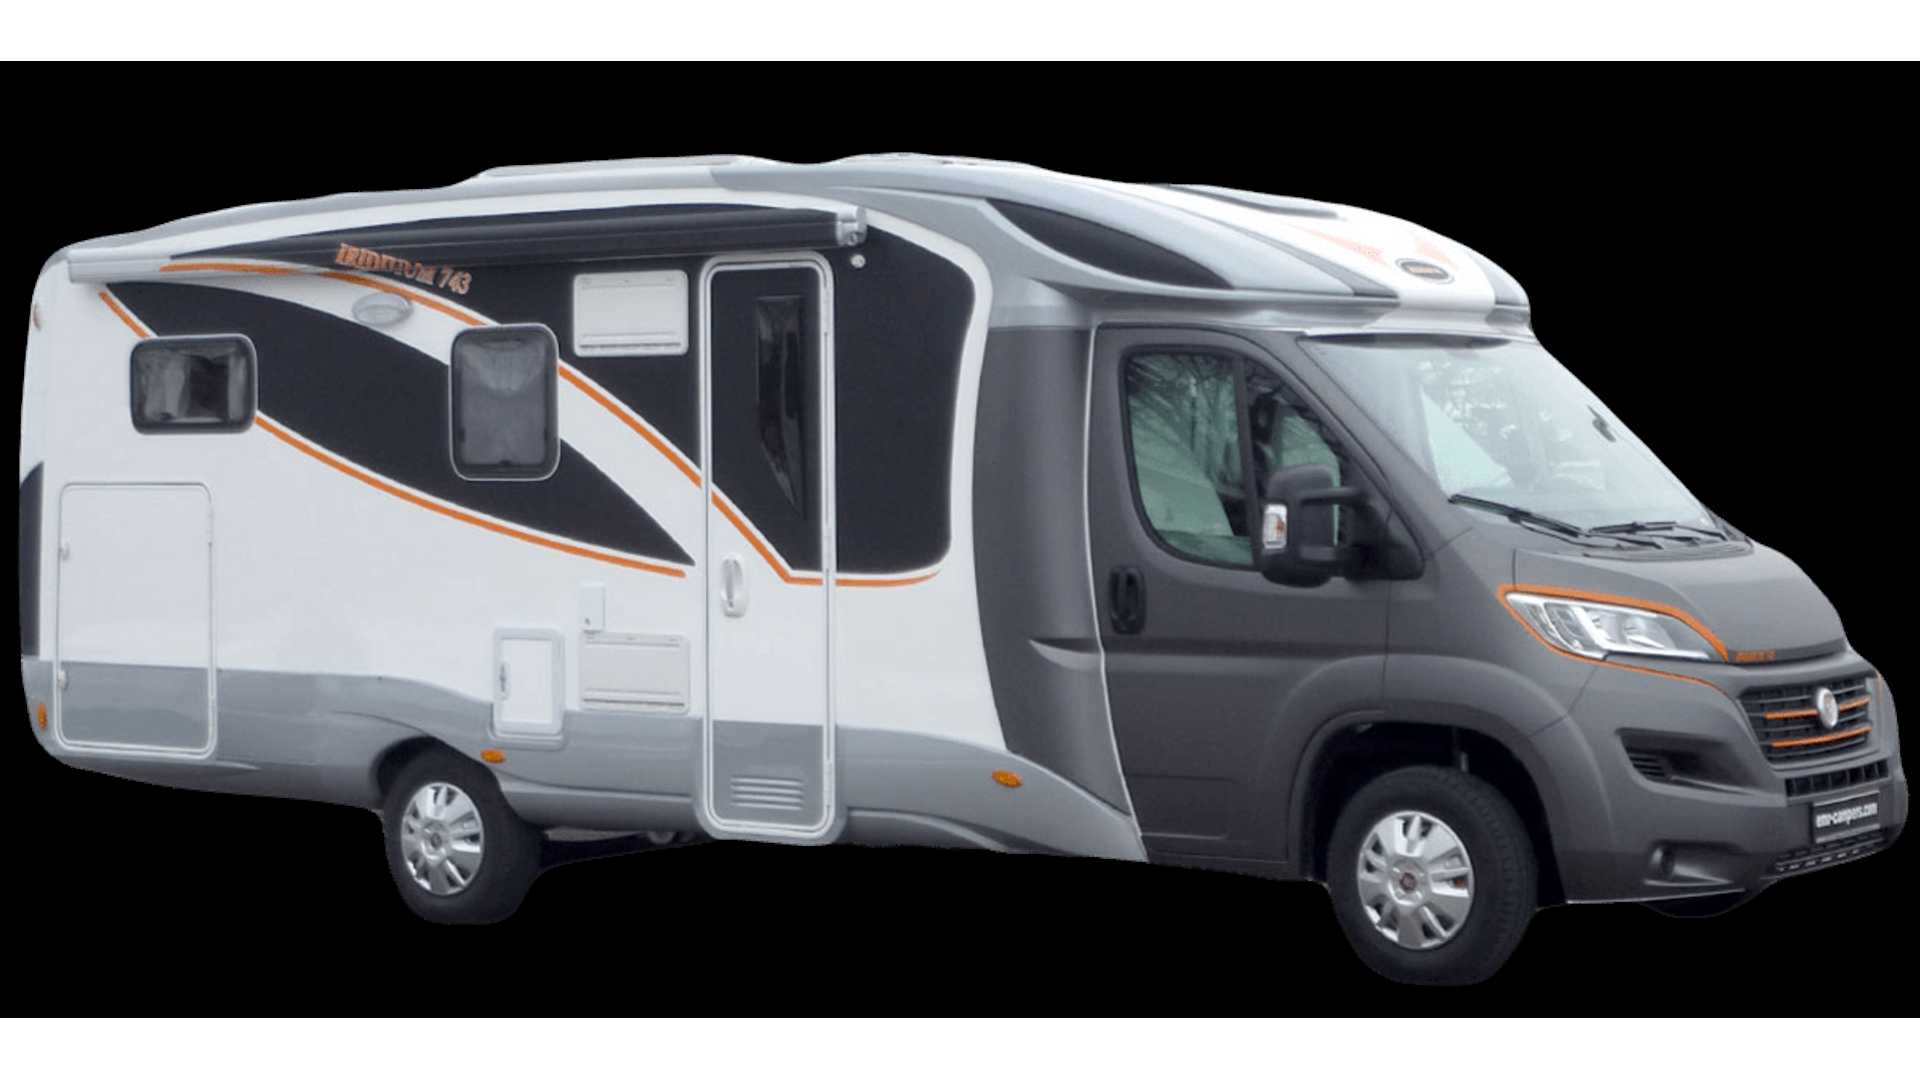 Iridium To Launch E Mobil Electric Motorhome: Charge While